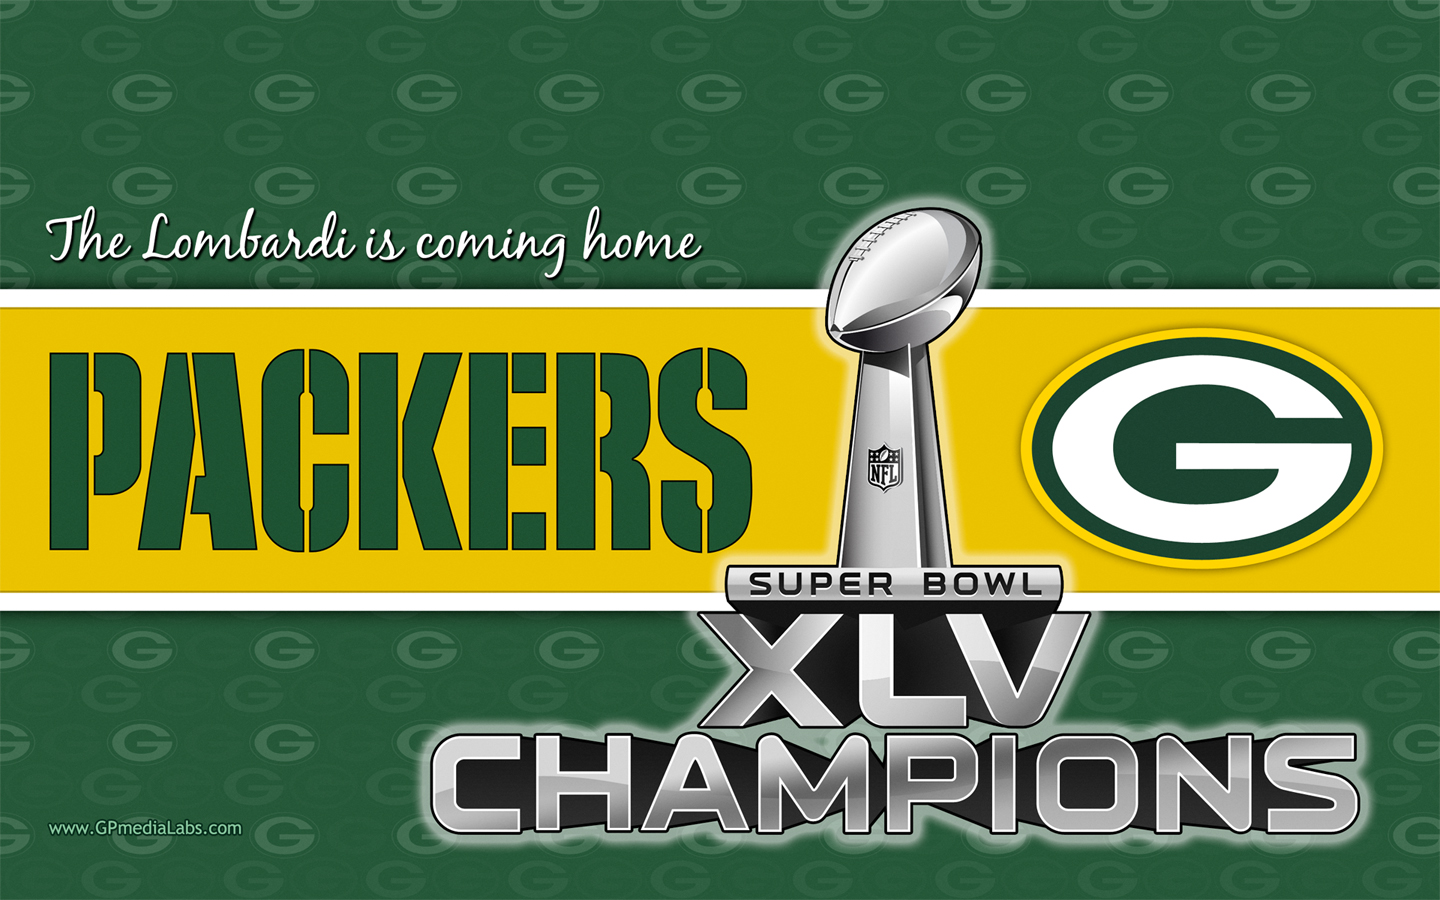 Green Bay Packers Cell Phone Wallpaper 1440x900